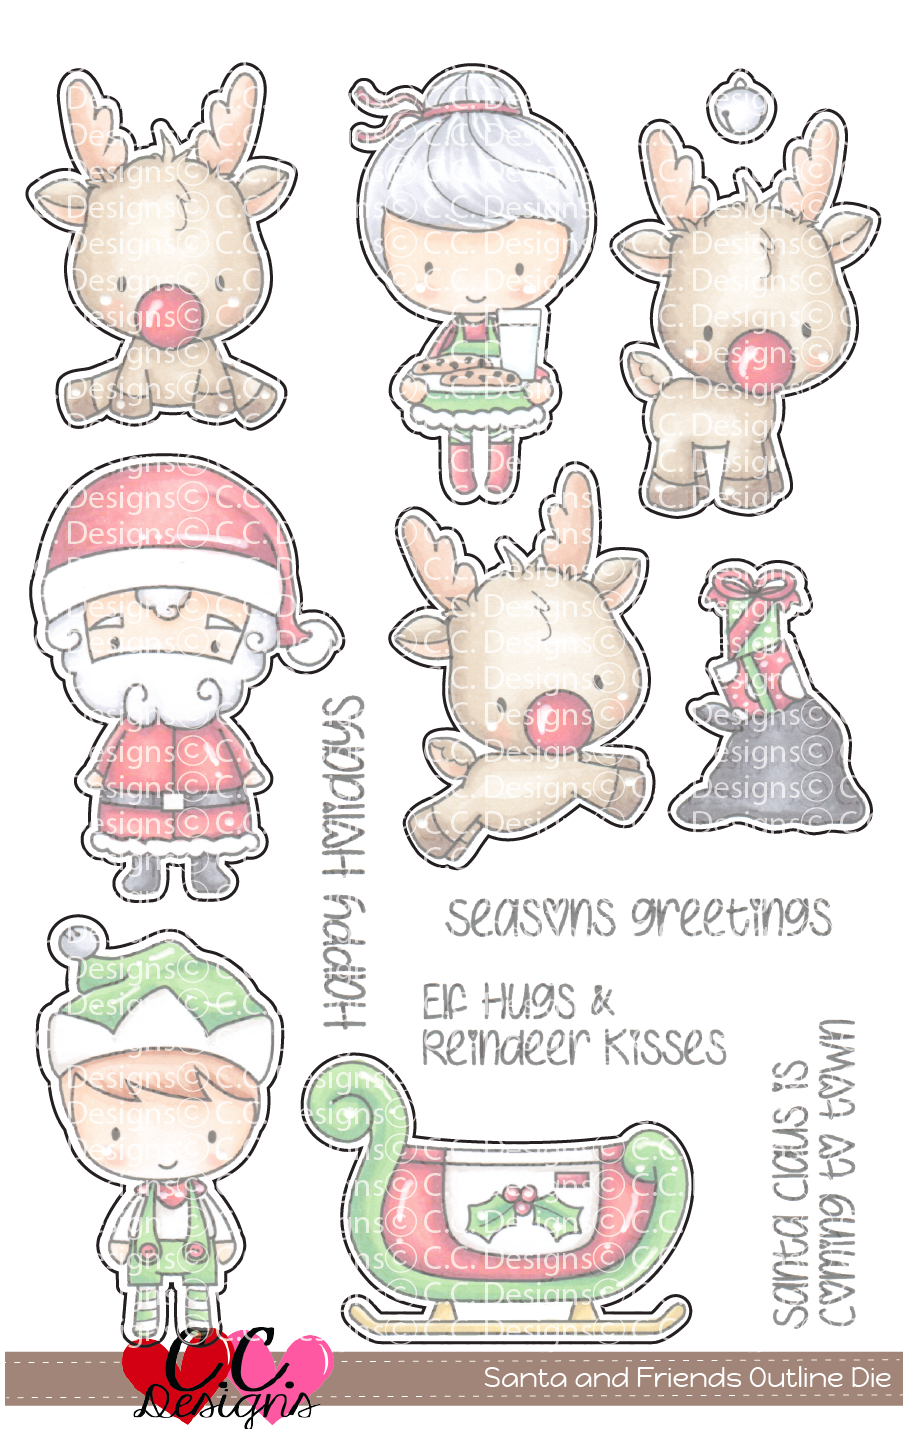 *PRE-ORDER* - CC Designs - Santa and Friends Outline Cutter